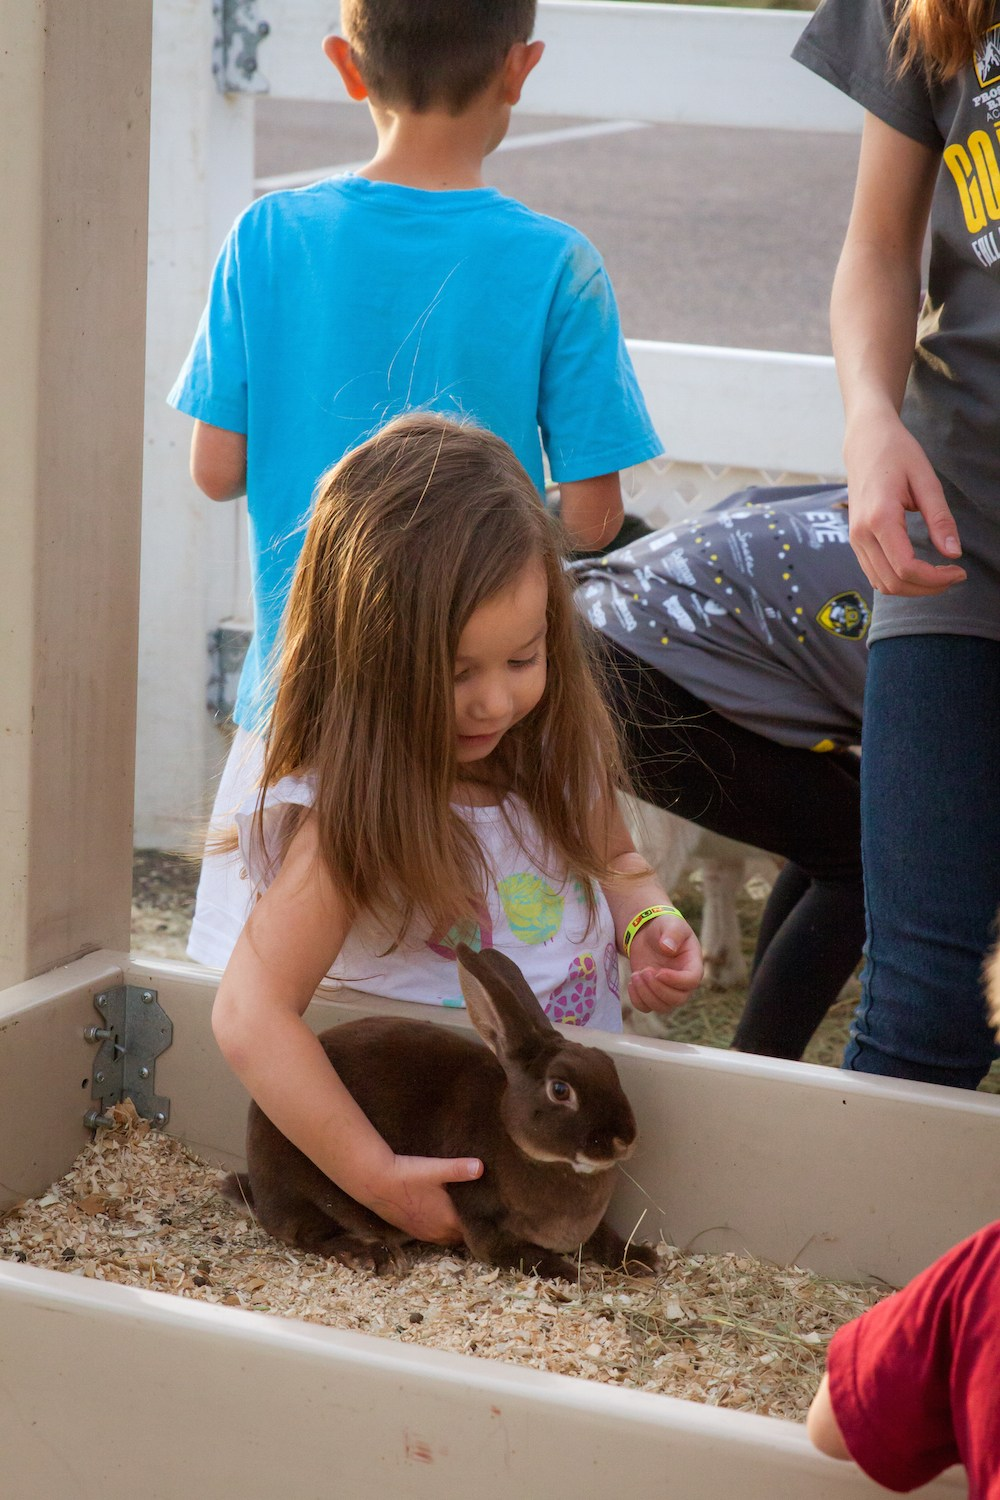 Kid petting bunny